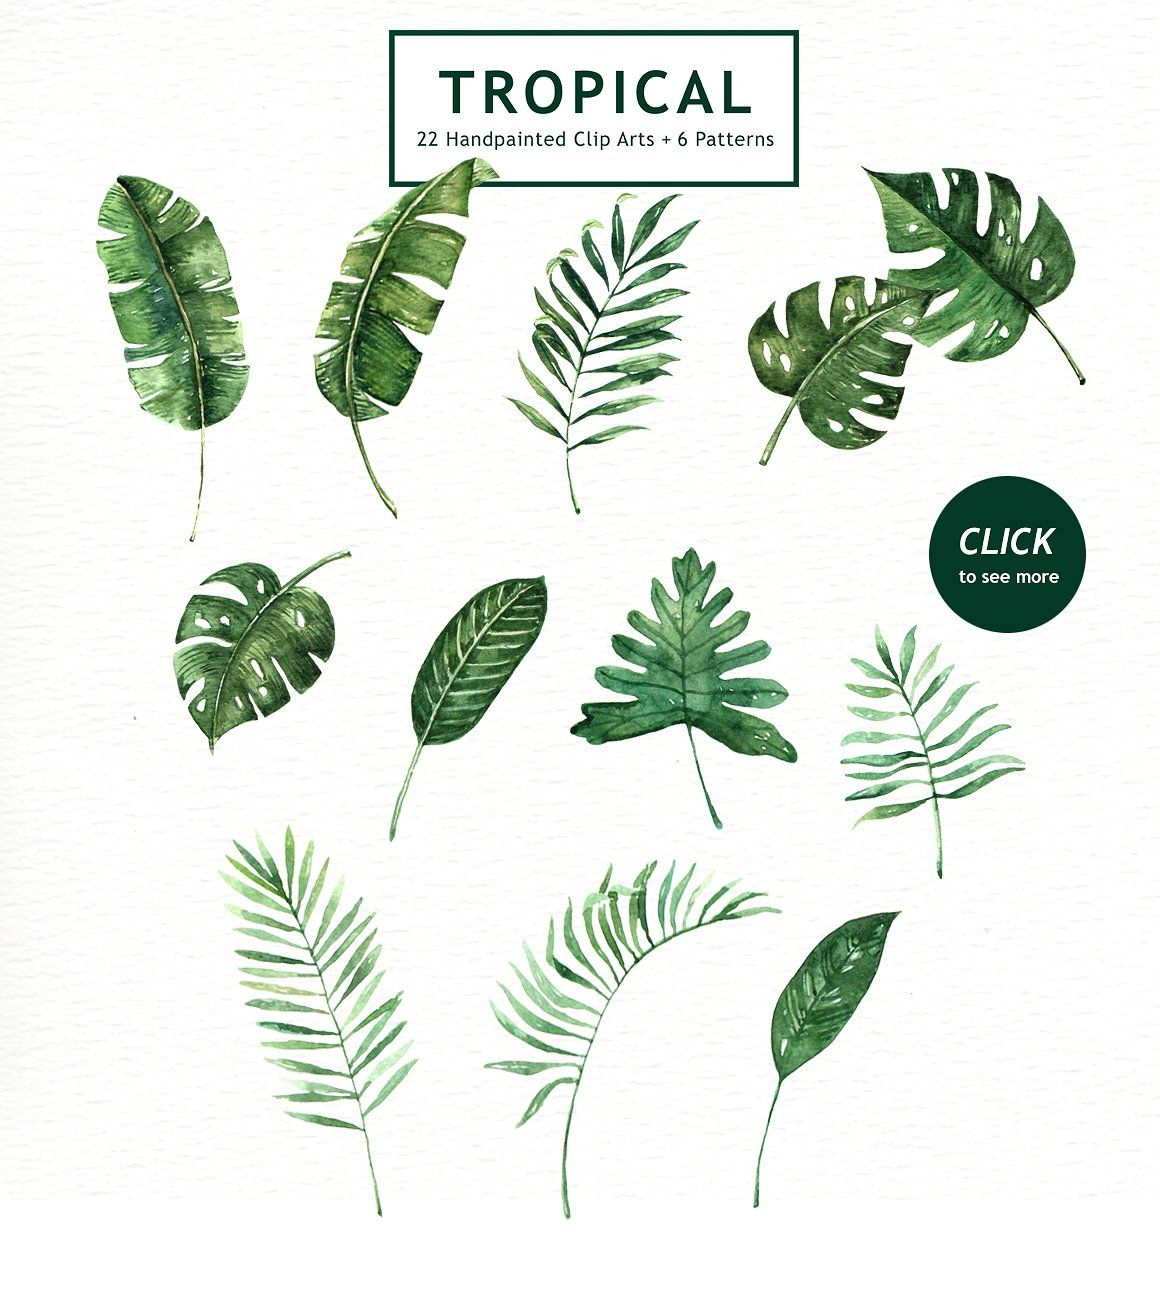 Tropical Leaves Watercolor Clipart Watercolor Leaves Watercolor Flowers Watercolor Clipart Rainforests are forests characterized by high and continuous rainfall, with annual rainfall in the case of tropical rainforests between 2.5 and 4.5 metres (98 and 177 in). pinterest